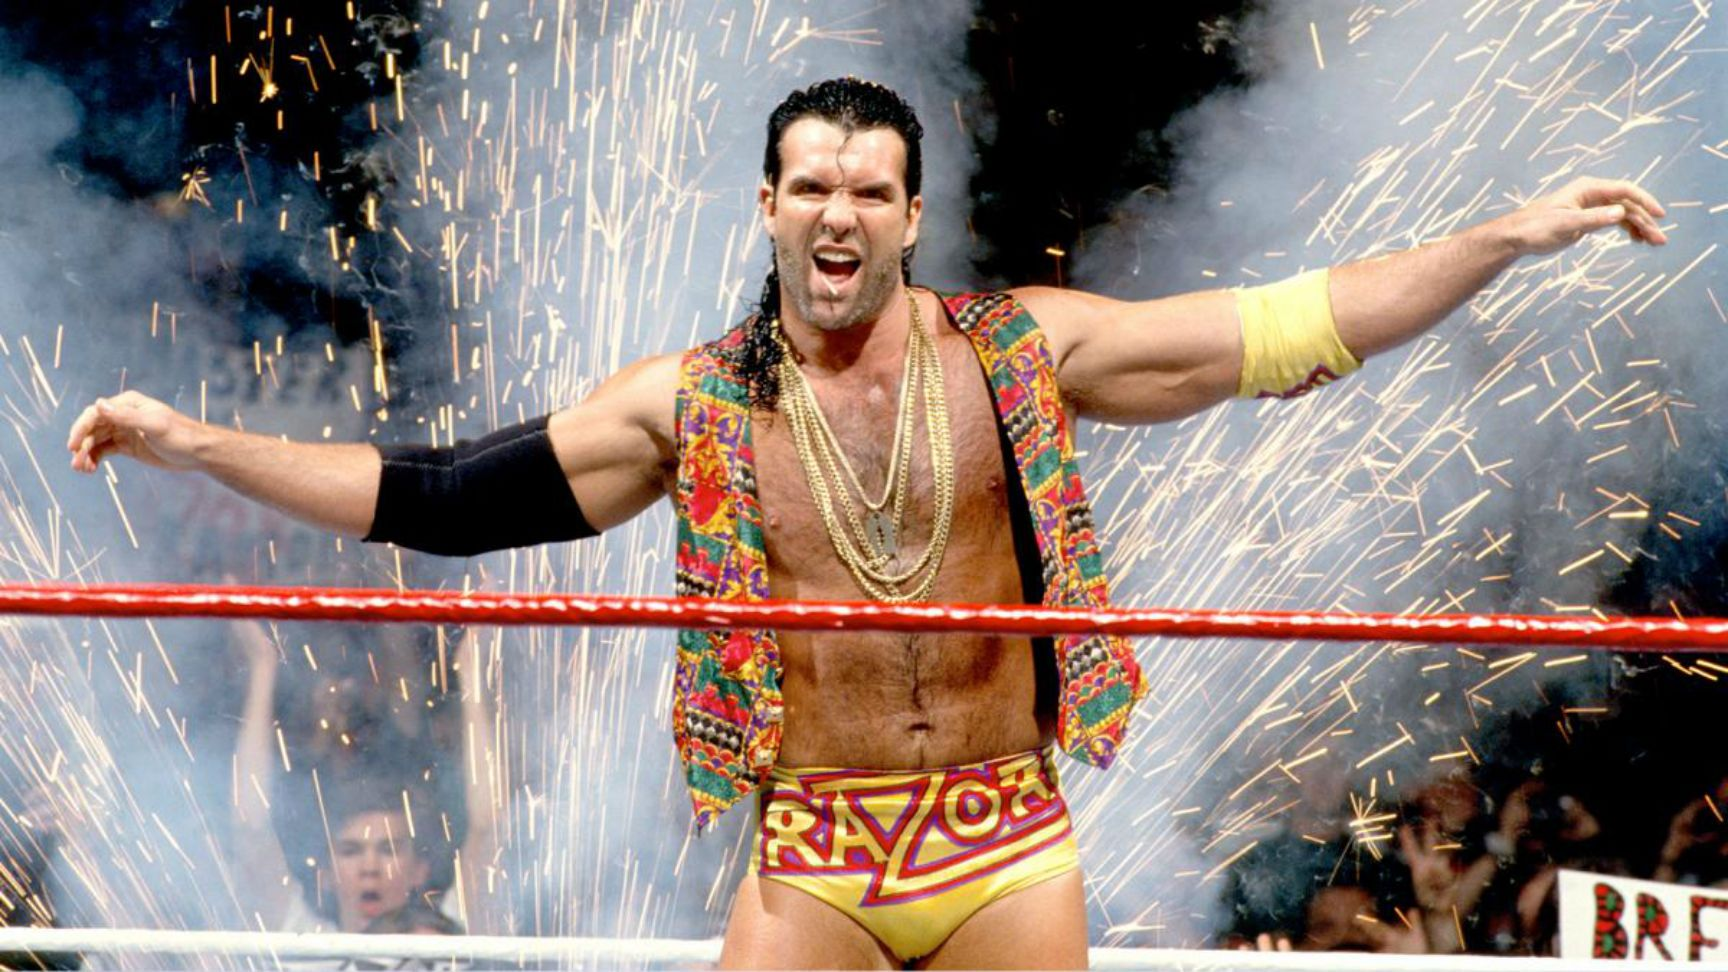 WWE 90s Wrestlers: Where Are They Now?